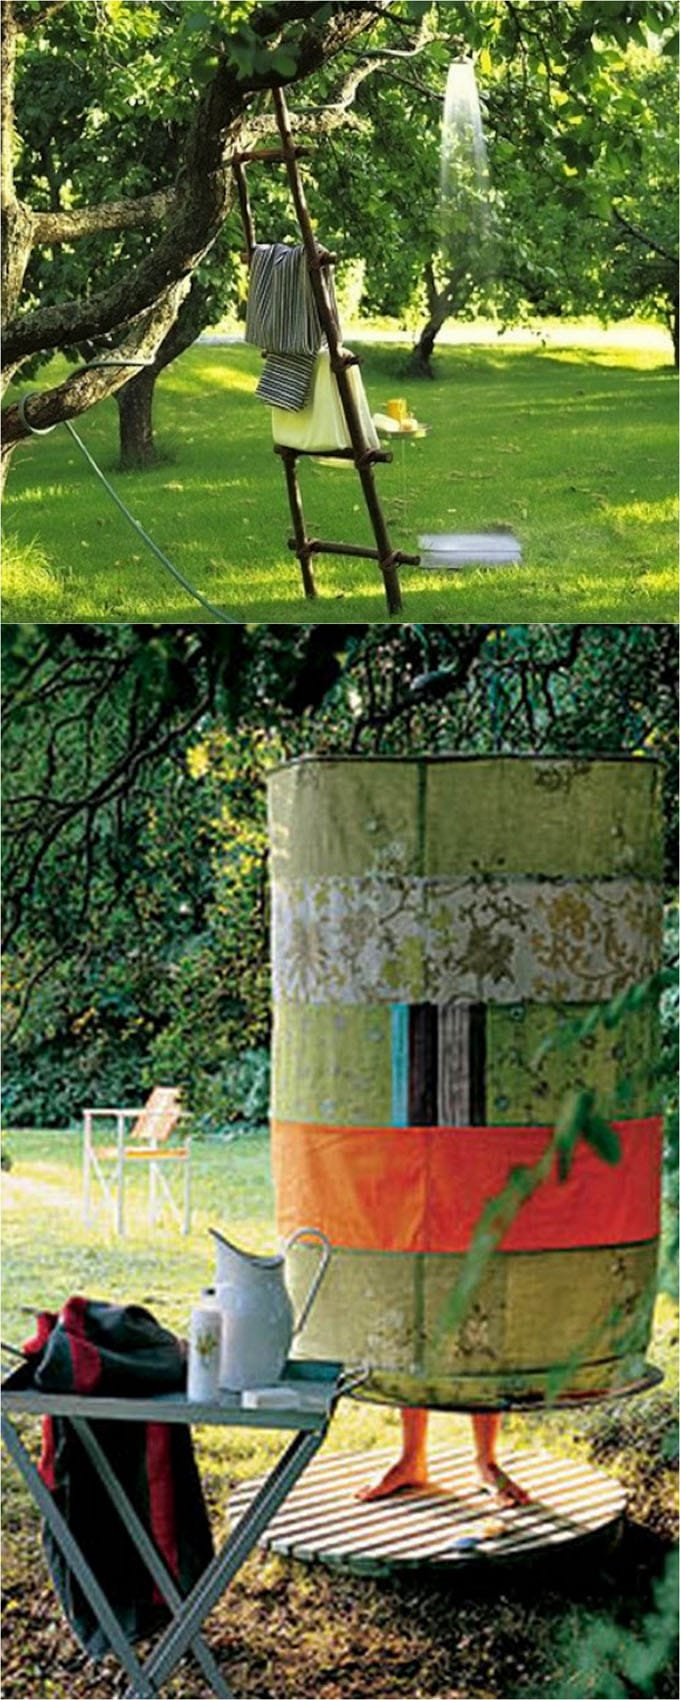 An Old Tree, A Hose, And A Tower Ladder, Life Is Perfectu2026. If You Want A  Simple Outdoor Shower Enclosure, Take Two Large Hula Hoops Like These 36u2033  Ones, ...